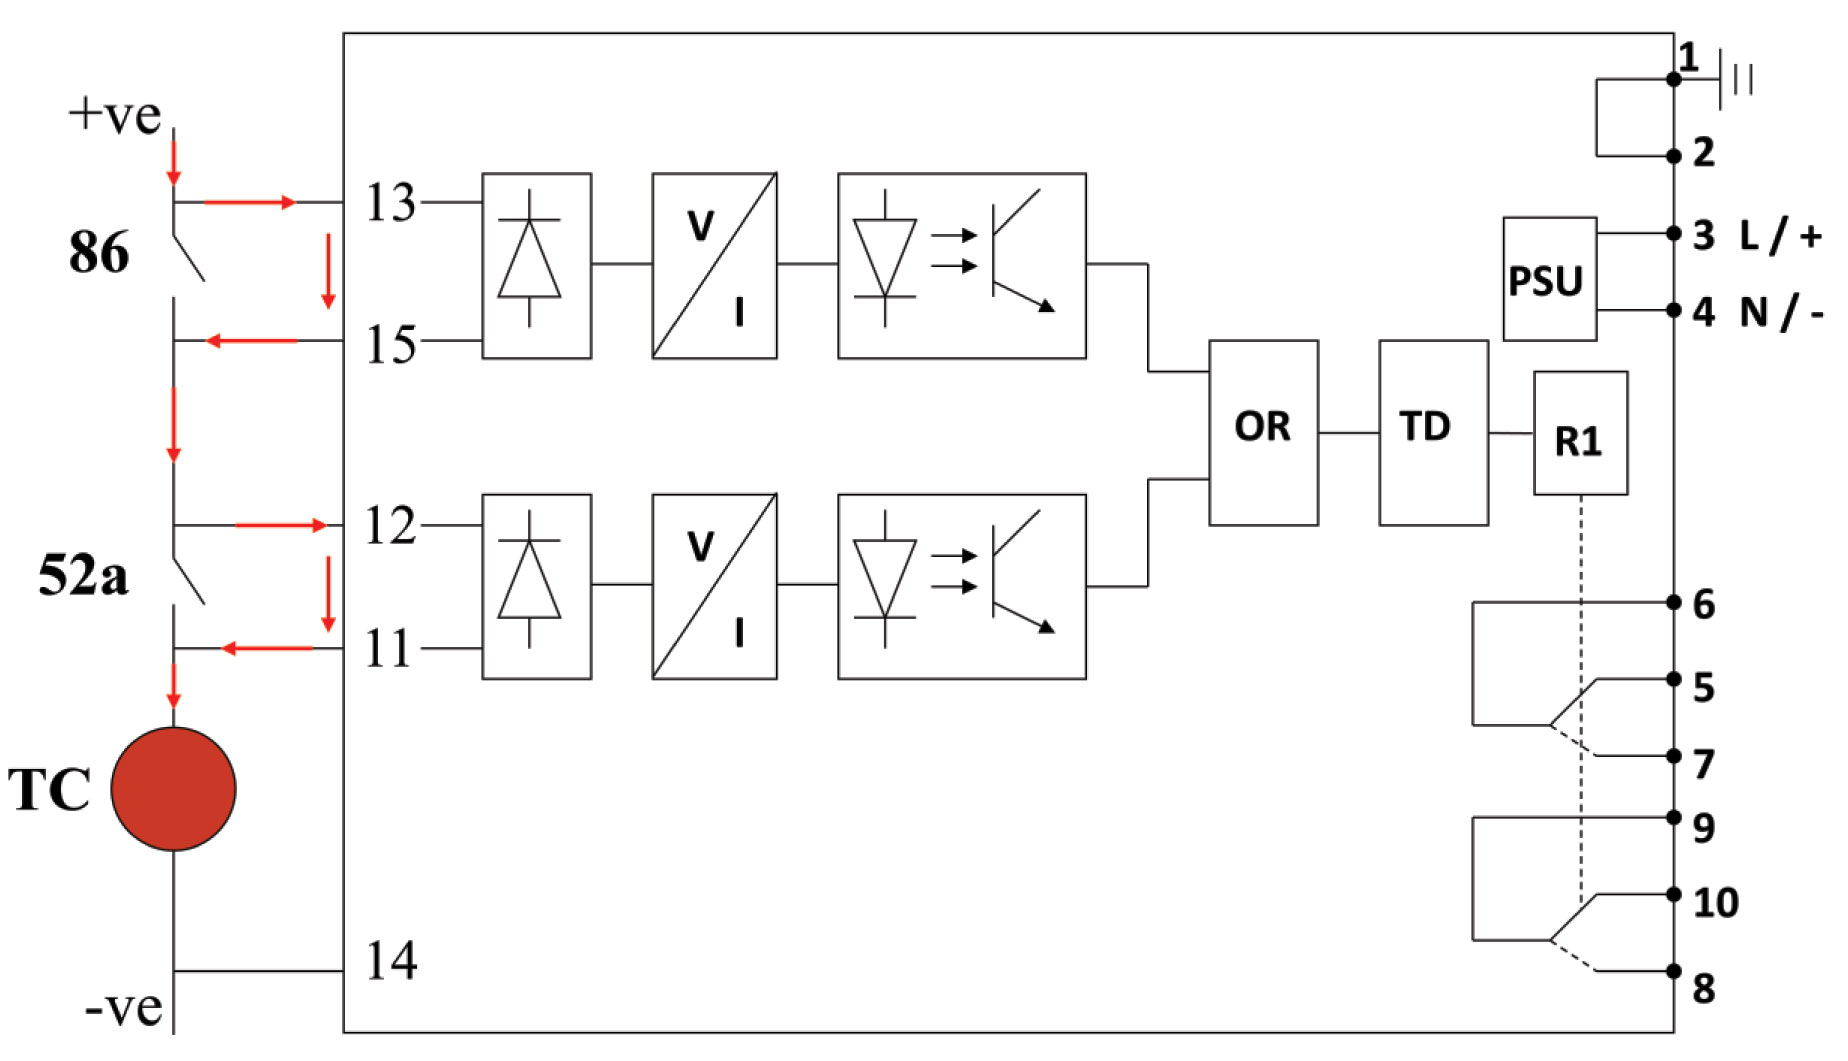 Hvac Lockout Relay Wiring Diagram Page 2 And Circuit Breaker Electrical India Rh Electricalindia In Electroswitch